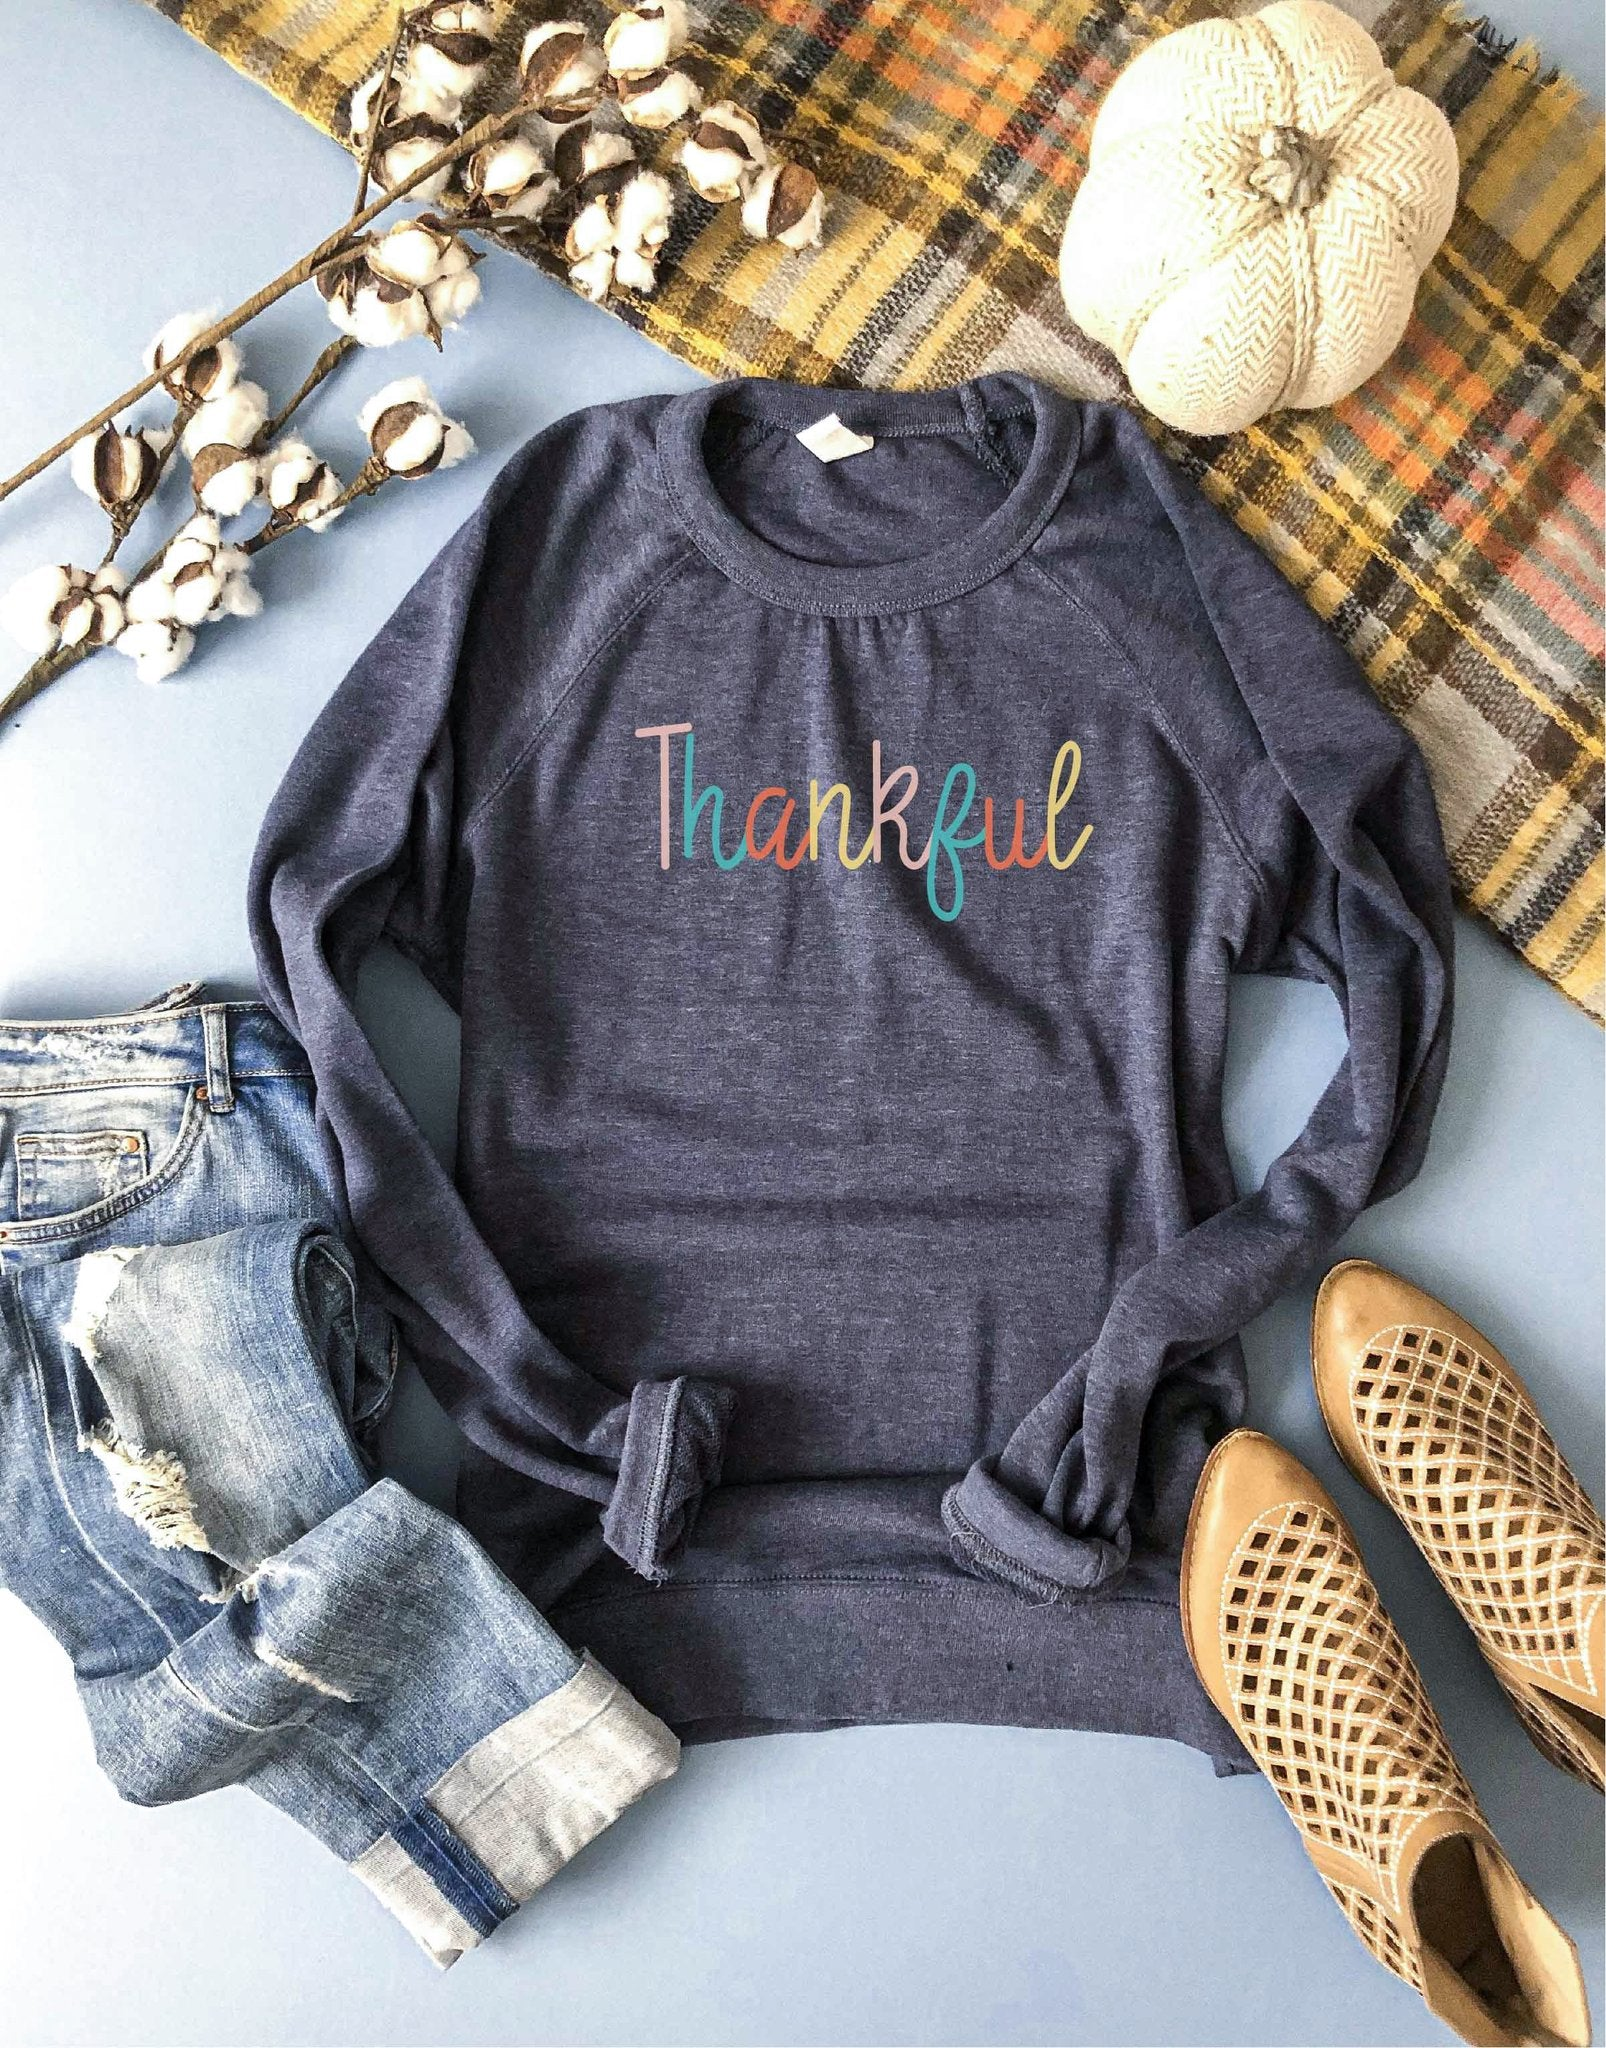 Luxe French Terry Raglan Graphic Sweatshirt - Thankful - Brooke & Kat Boutique